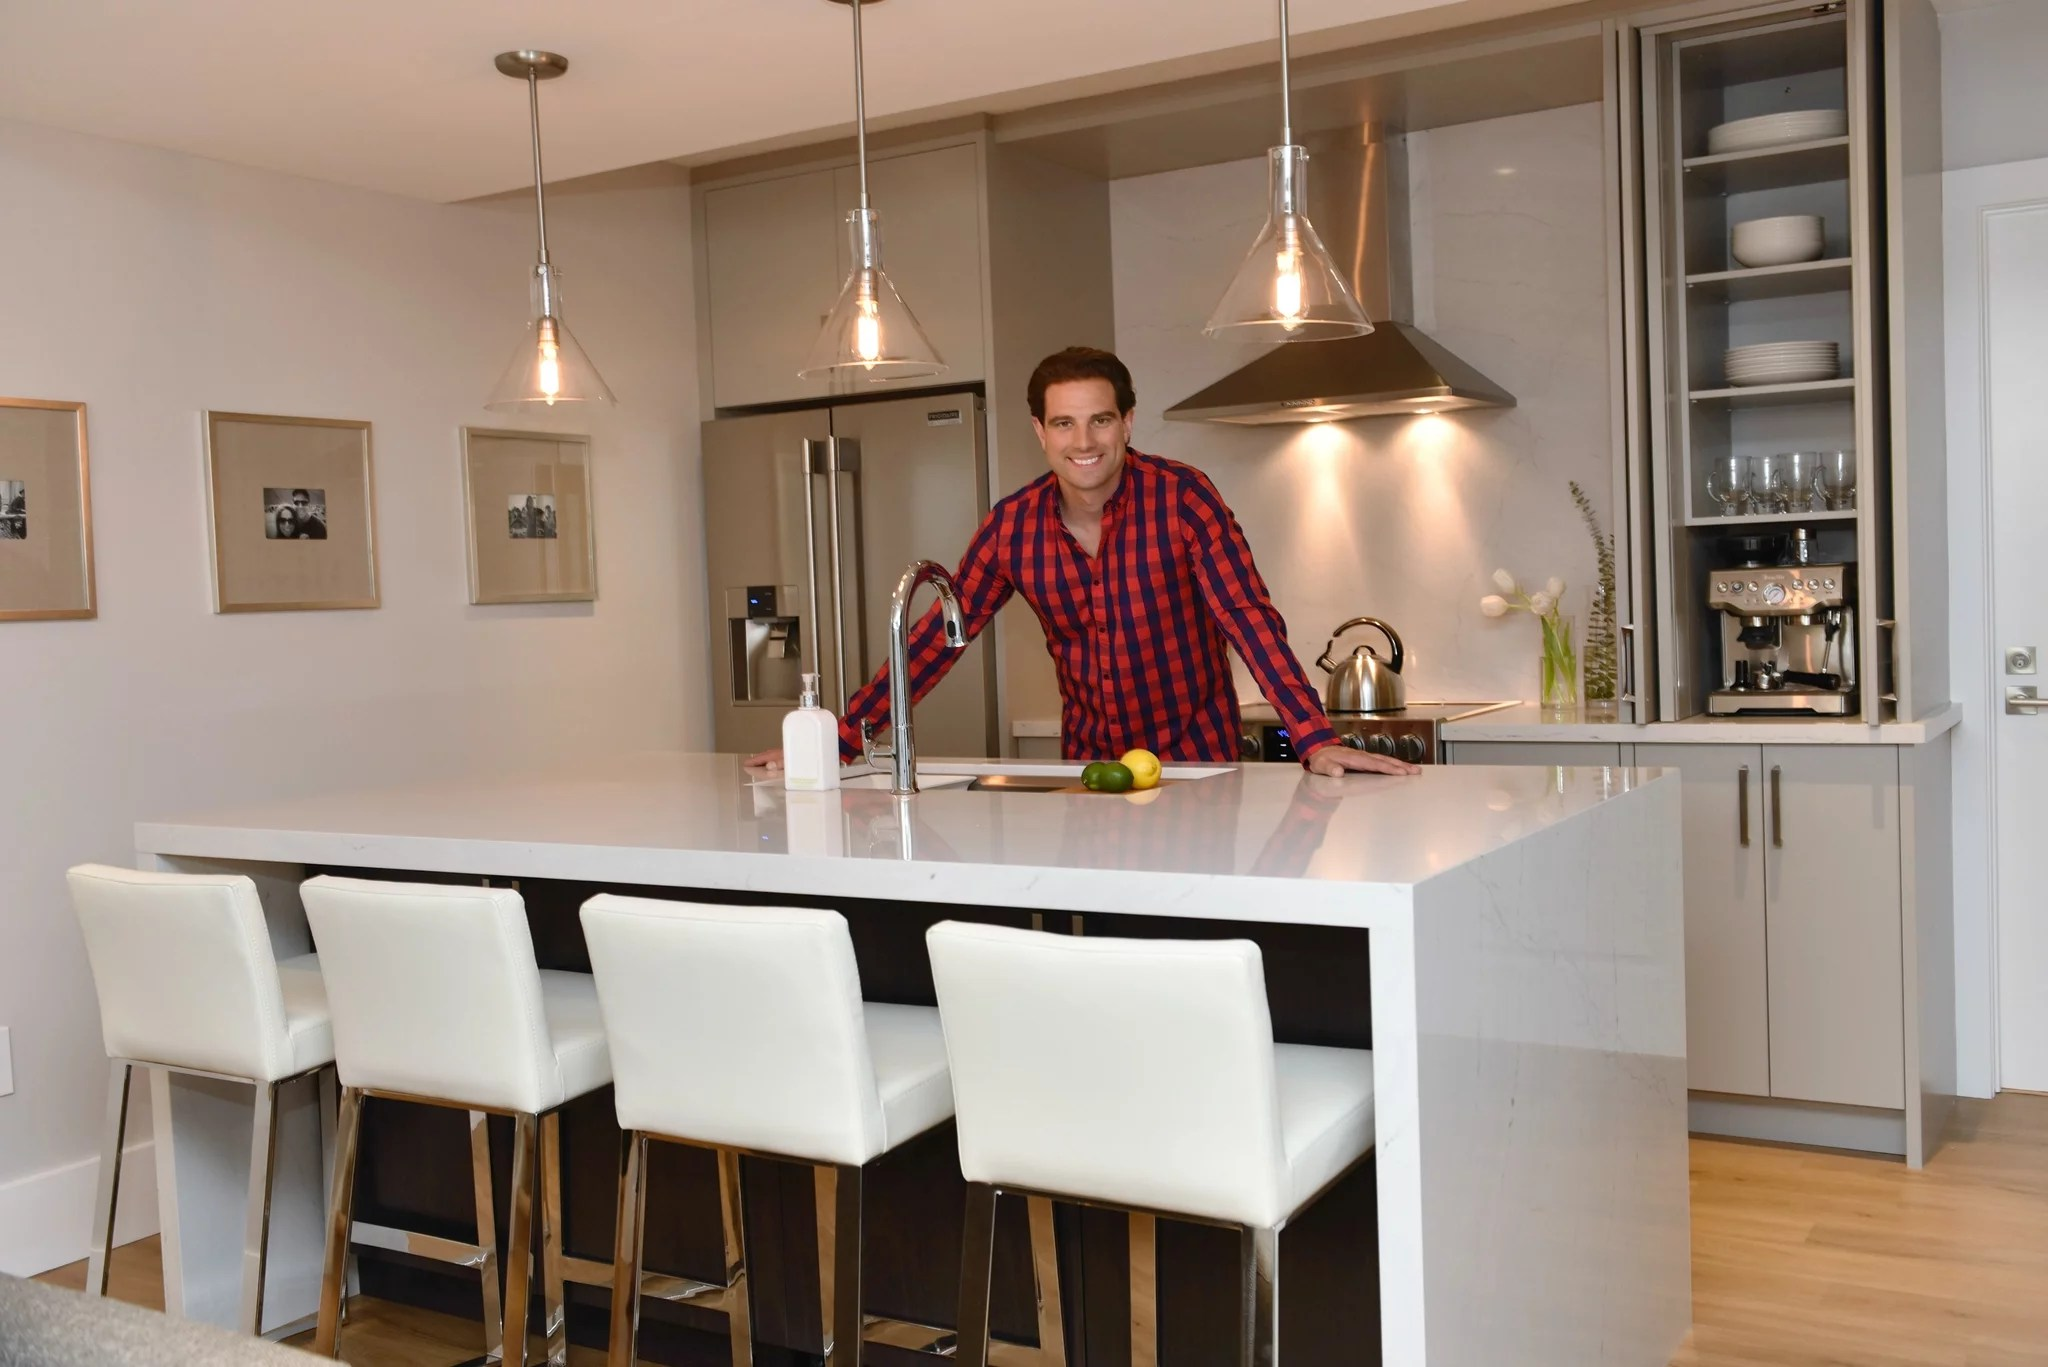 Kitchen Design Images Australia Scott Mcgillivray Kitchen Design Advice Popsugar Home Australia